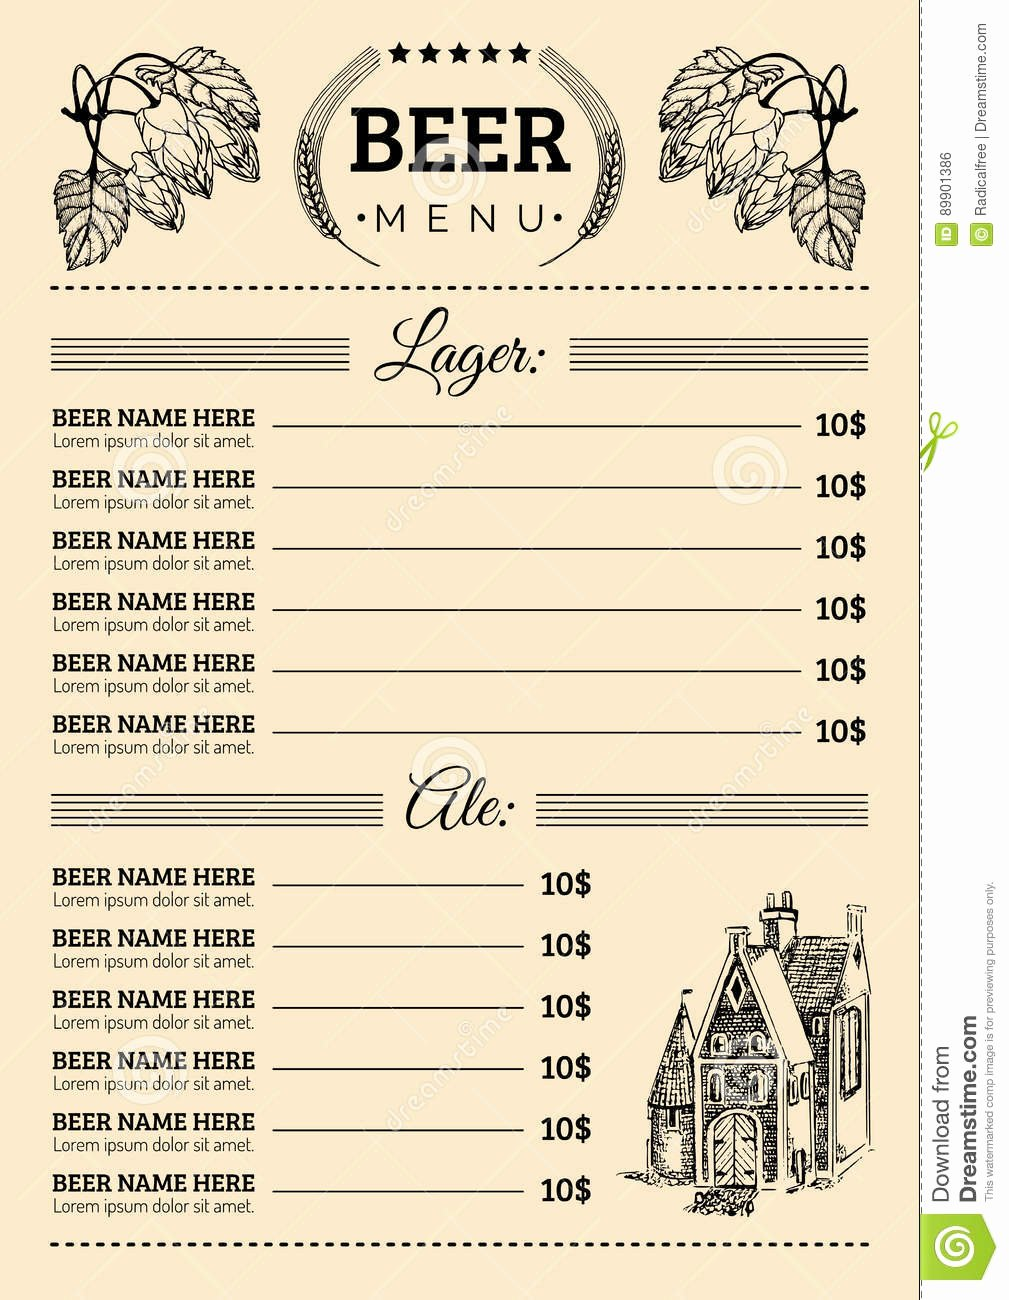 Free Beer Menu Template Awesome Beer Menu Design Template Vector Pub Restaurant Card with